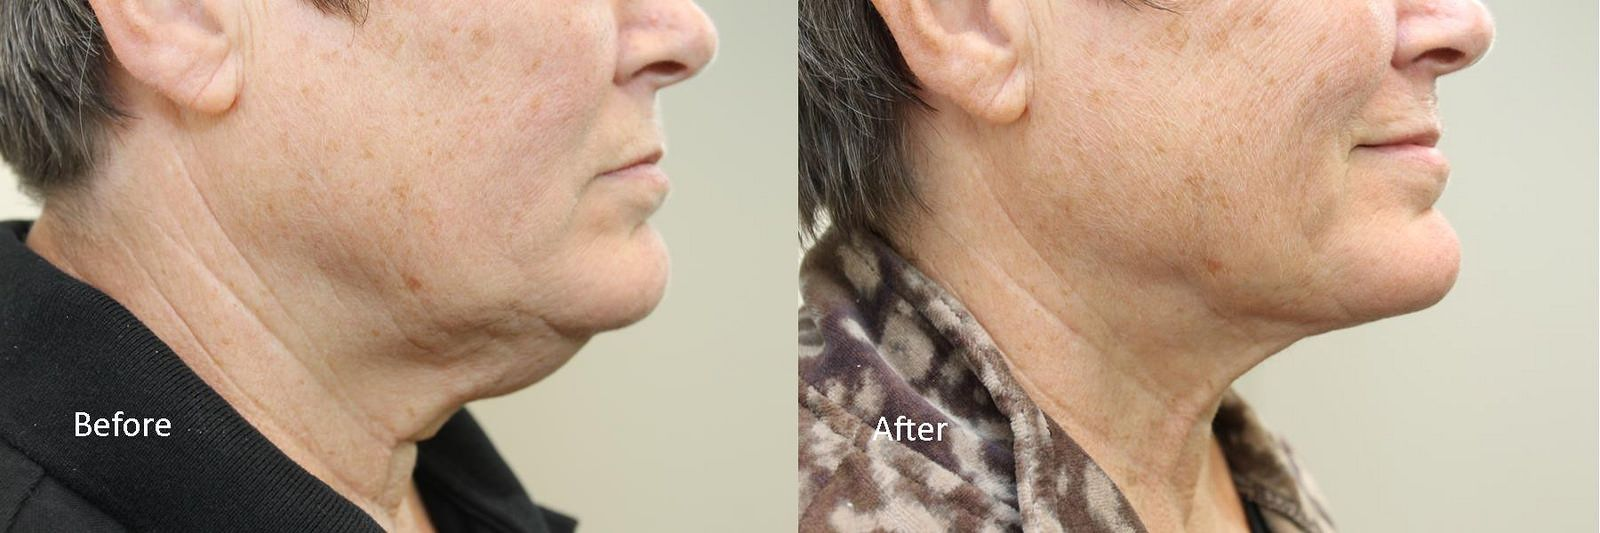 https://flic.kr/p/yUXtmj | LipoLift Neck LA5 www.drdarm.com - LipoLift neck before and after pictures. Results may vary. LipoLift is the trademarked name of Dr. Darm's signature laser-assisted liposuction procedure (laser lipolysis) that permanently removes fat from the body.